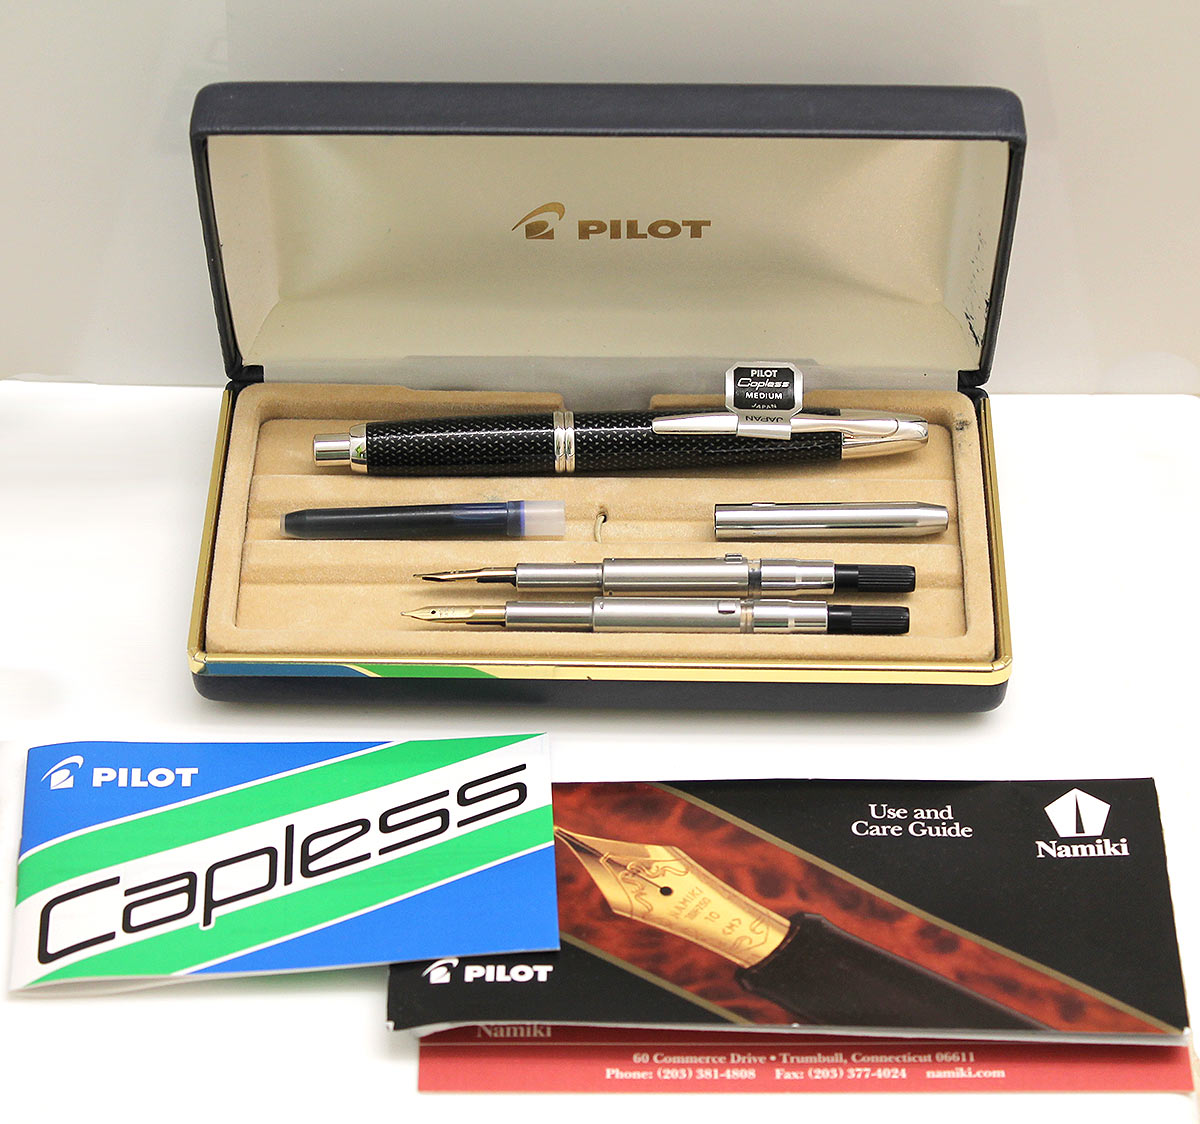 PILOT NAMIKI CARBONESQUE VANISHING POINT FOUNTAIN PEN WITH TWO NIBS MEDIUM / BROAD WITH PAPERS AND BOX OFFERED BY ANTIQUE DIGGER